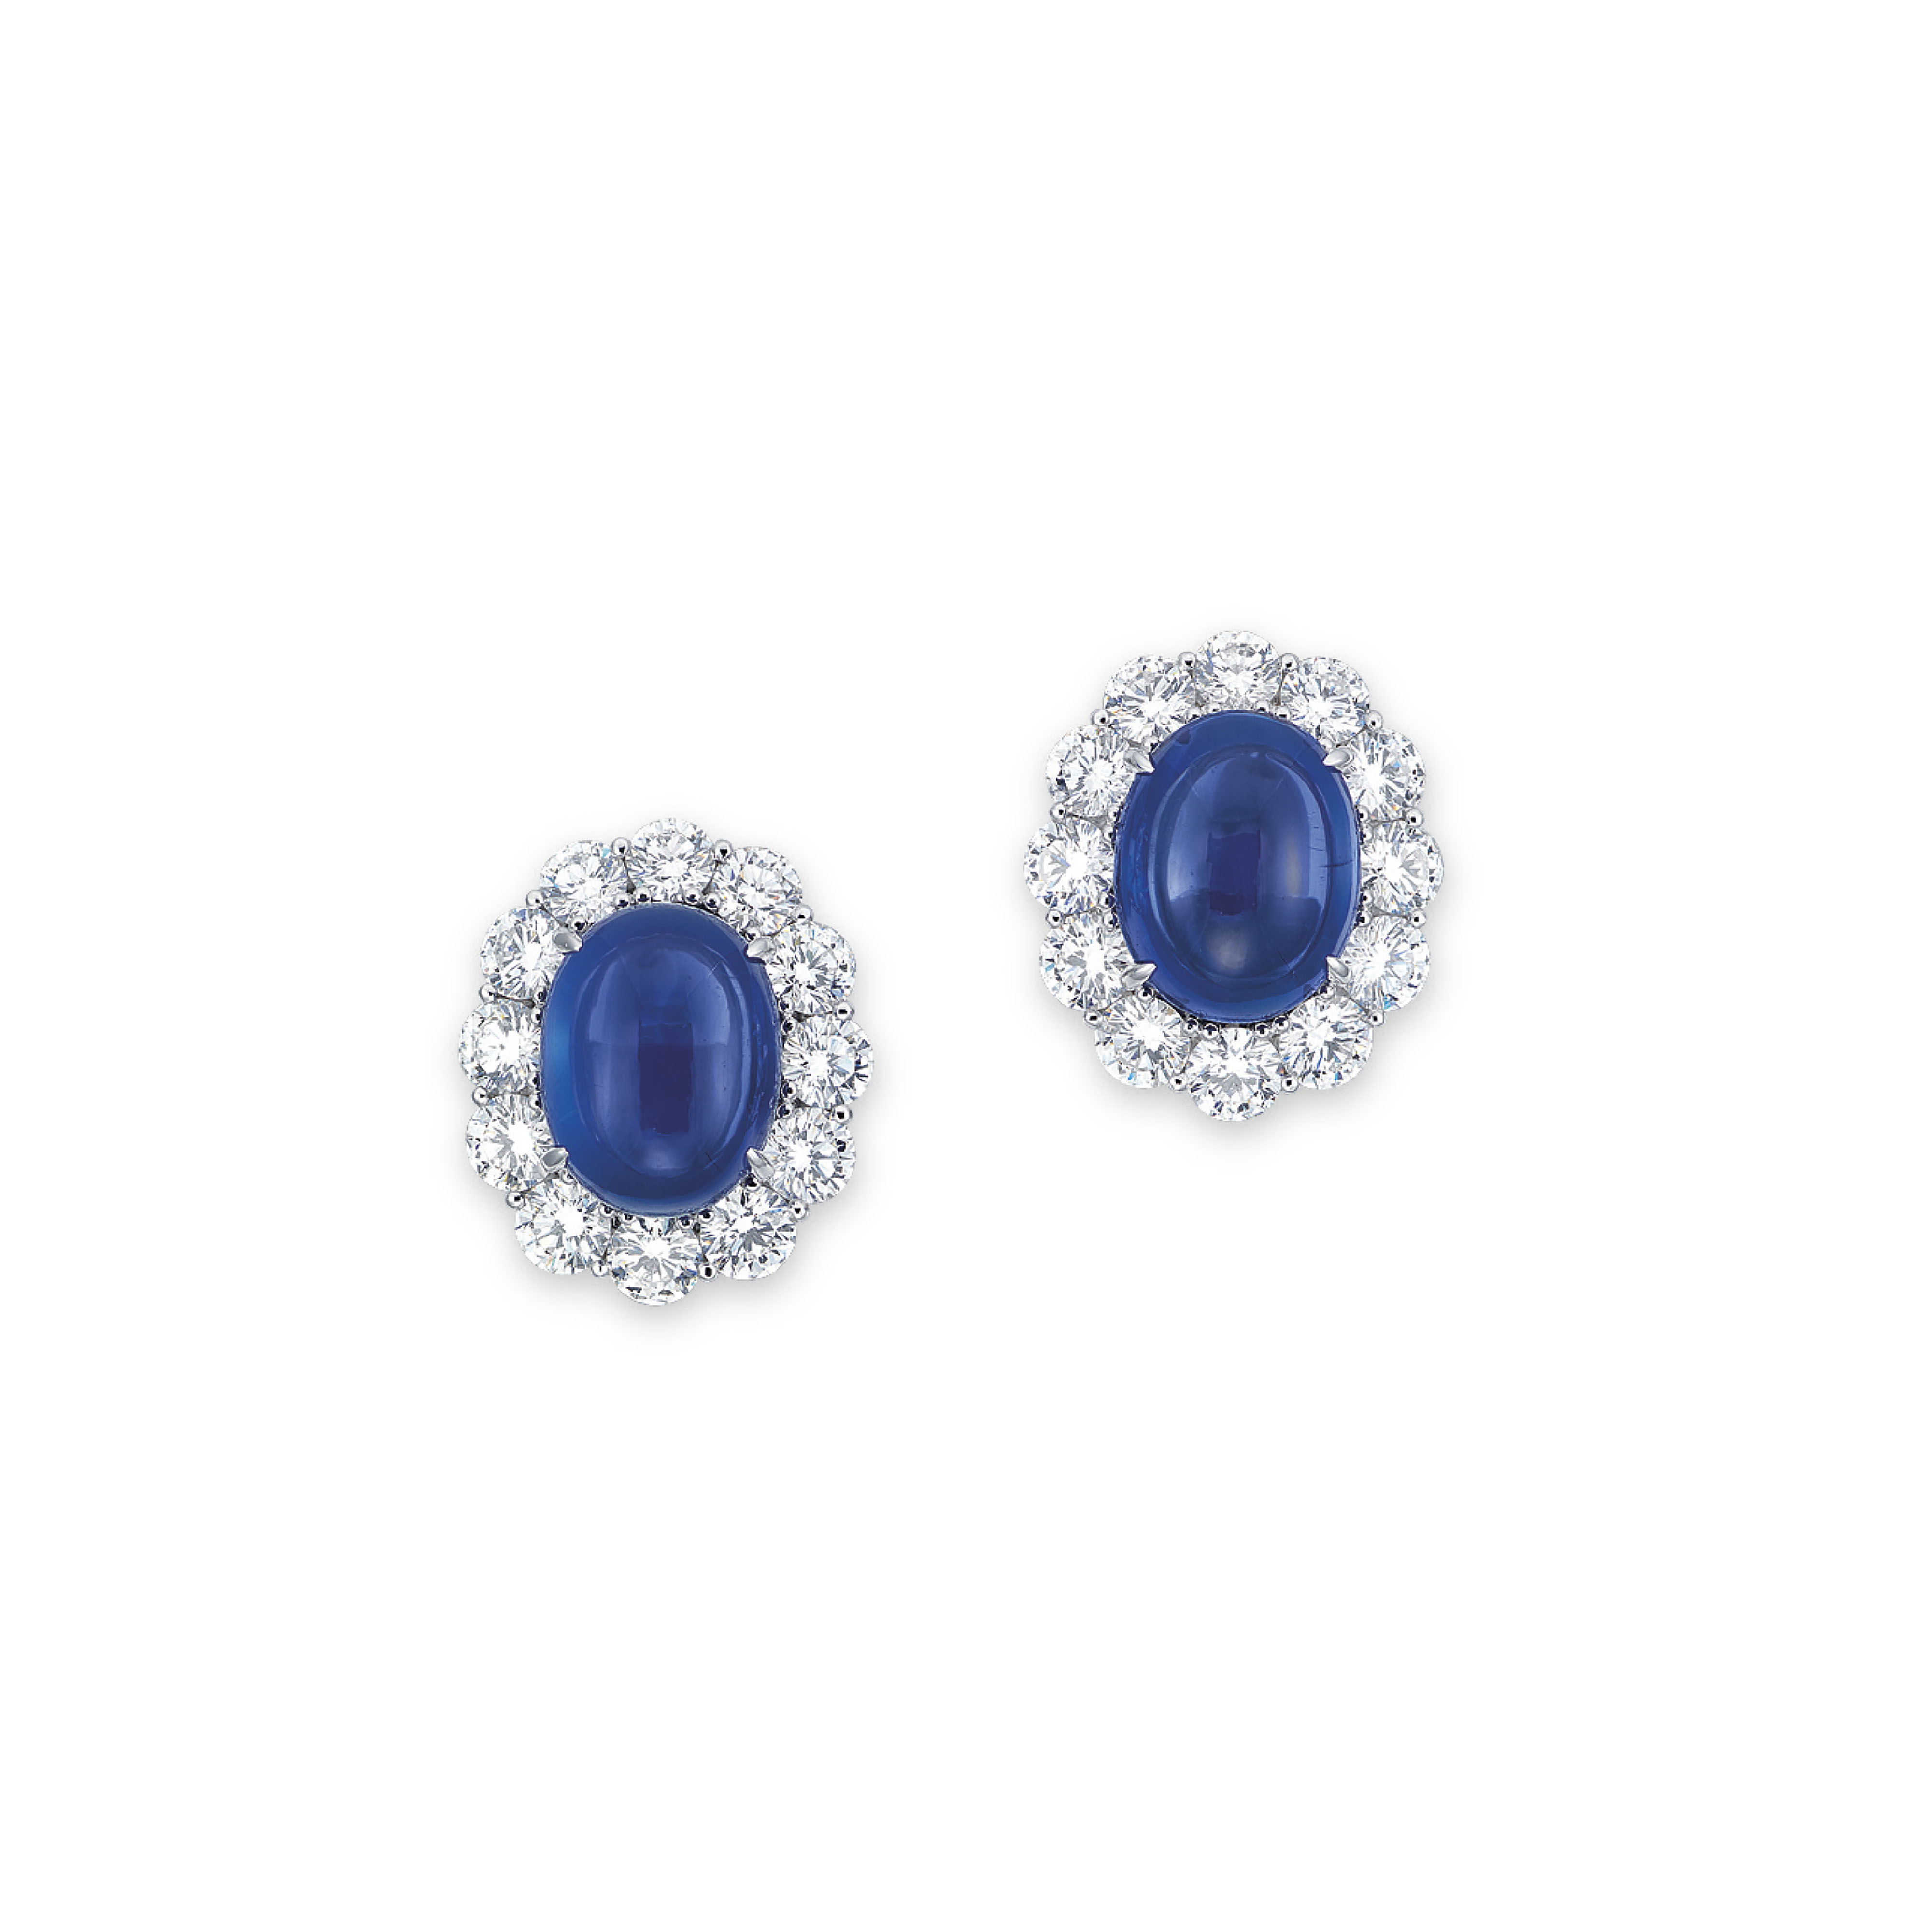 A PAIR OF SAPPHIRE AND DIAMOND EARRINGS, BY GIMEL